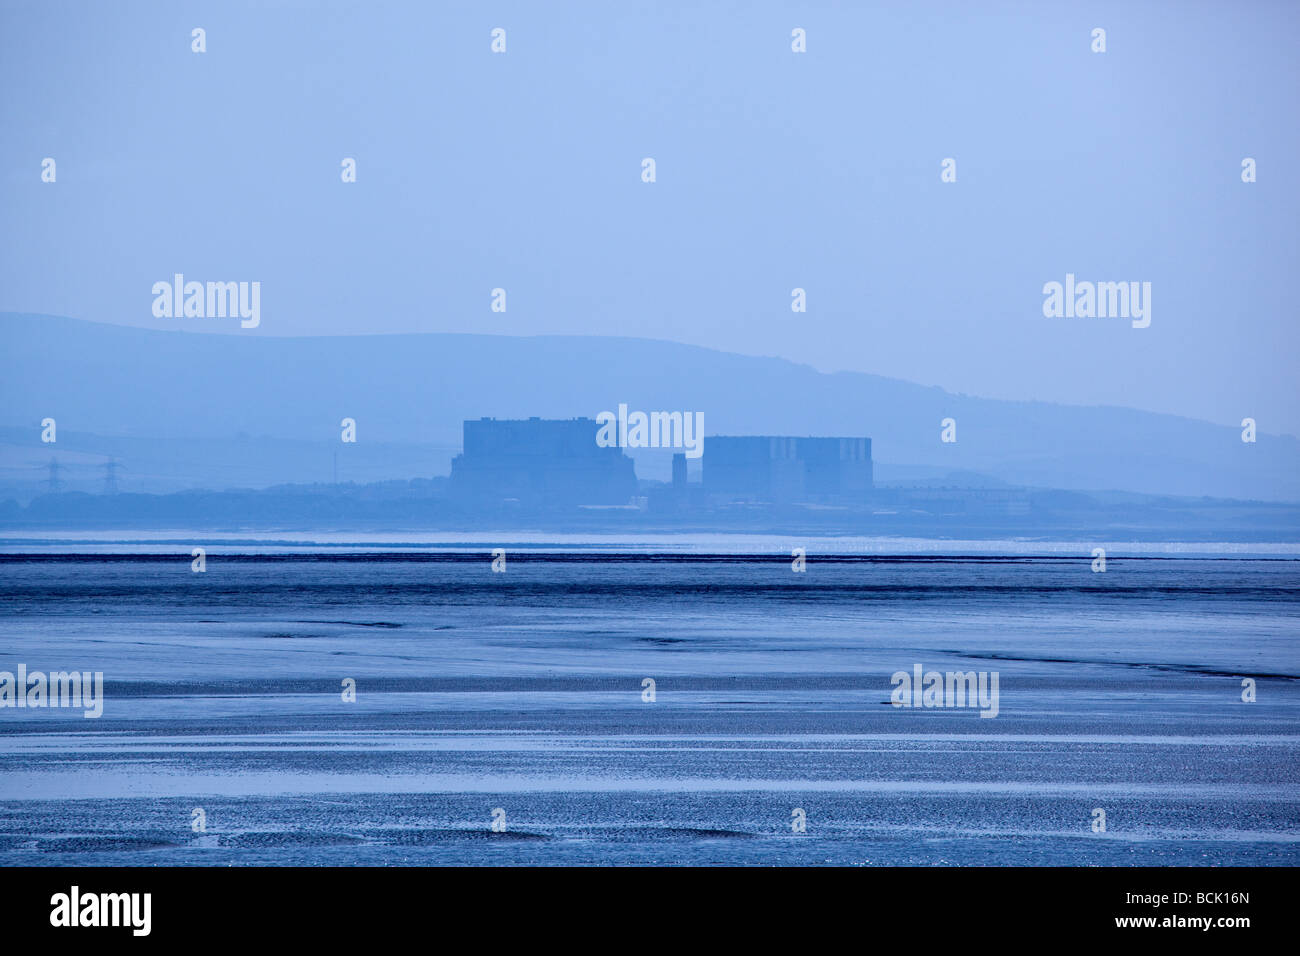 Hinkley Point Nuclear Power Stations - Stock Image